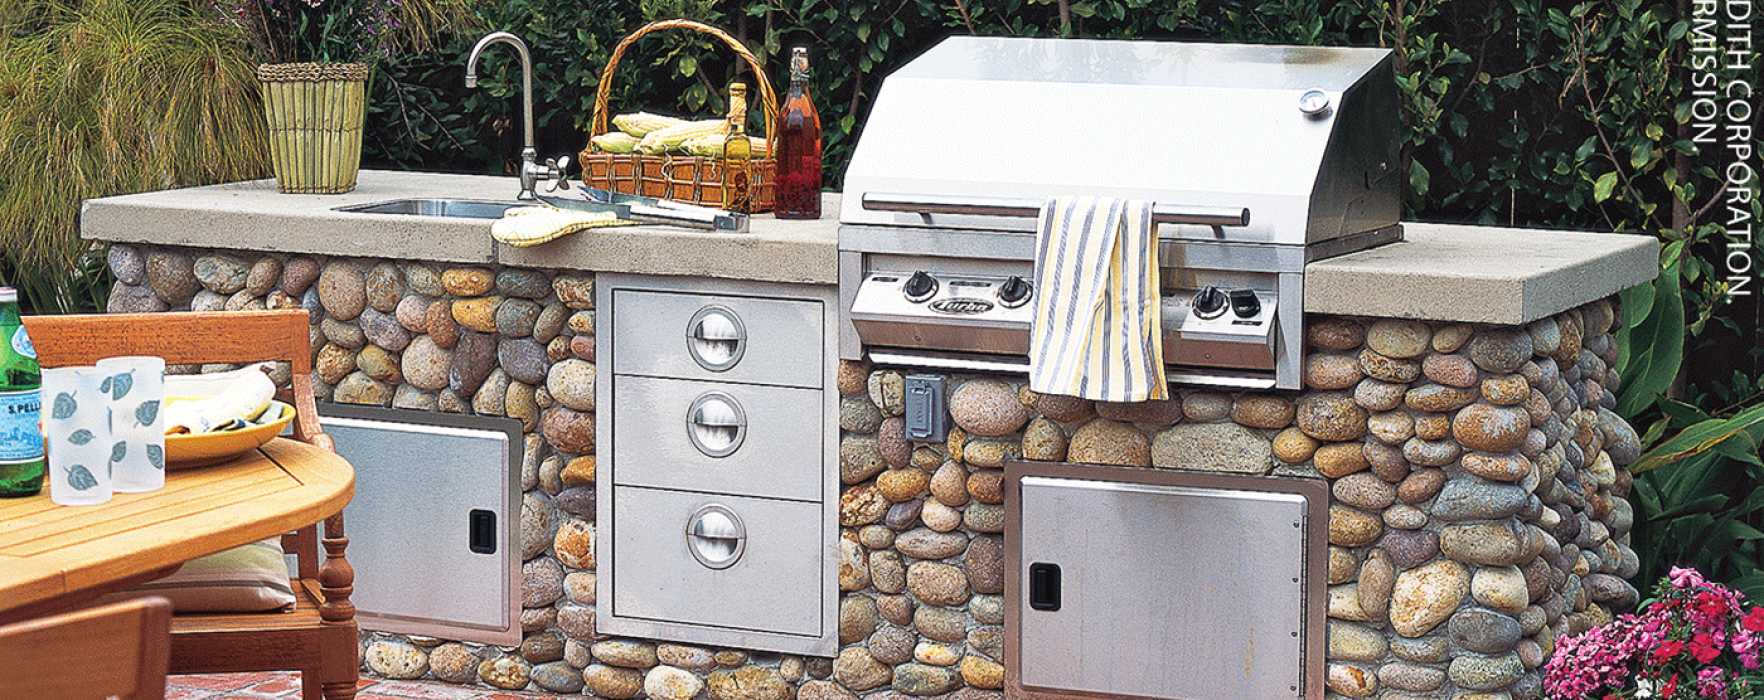 How To Design A Stylish Outdoor Kitchen Better Homes And